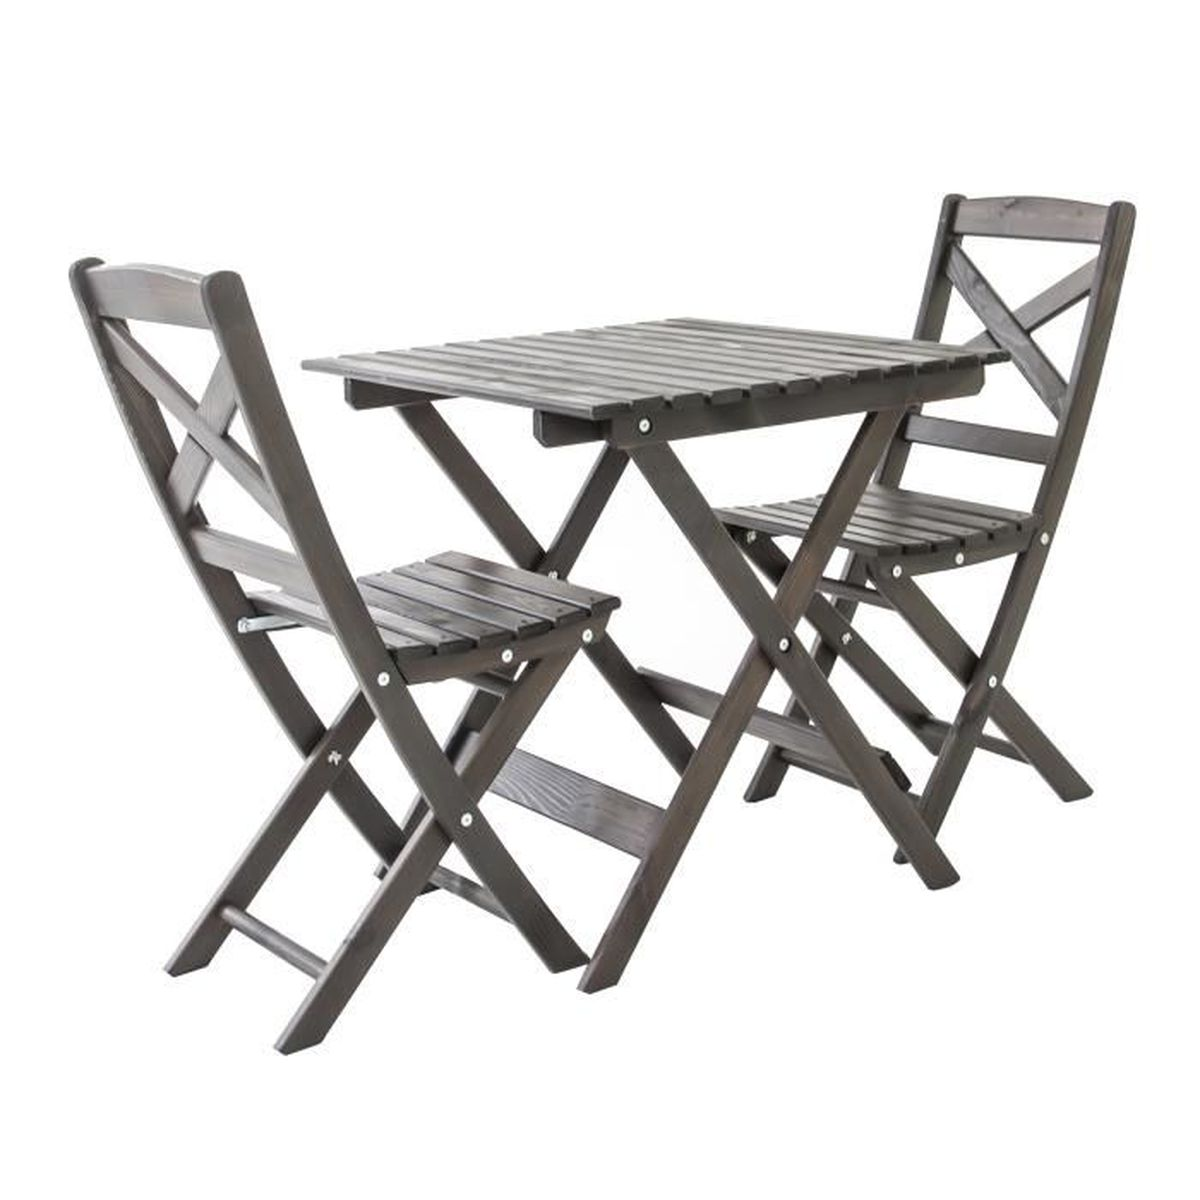 Ensemble de mobilier de jardin ou de balcon 1 table & 2 ...